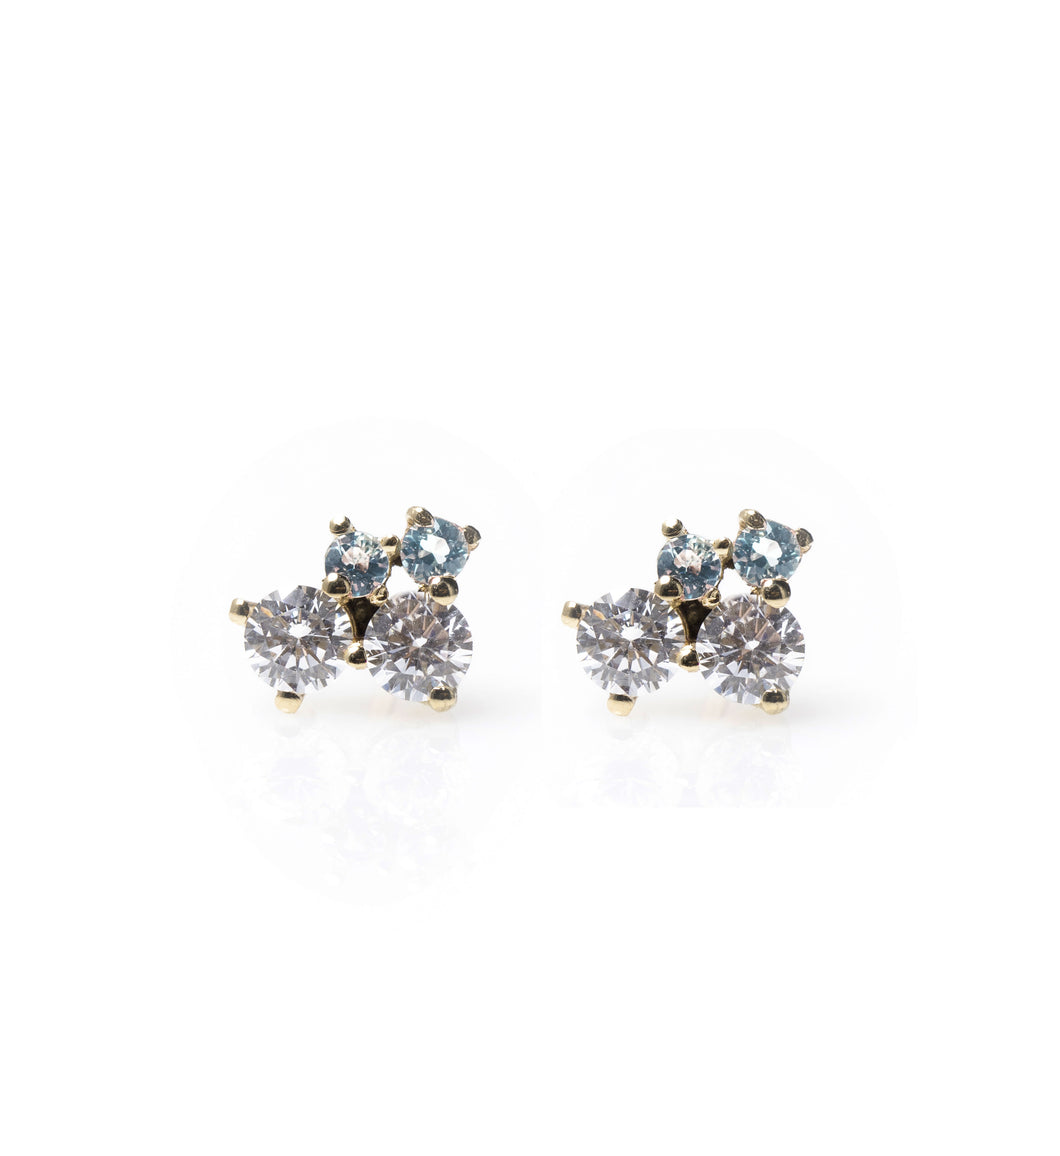 sue - 14k, diamond & aquamarine earrings